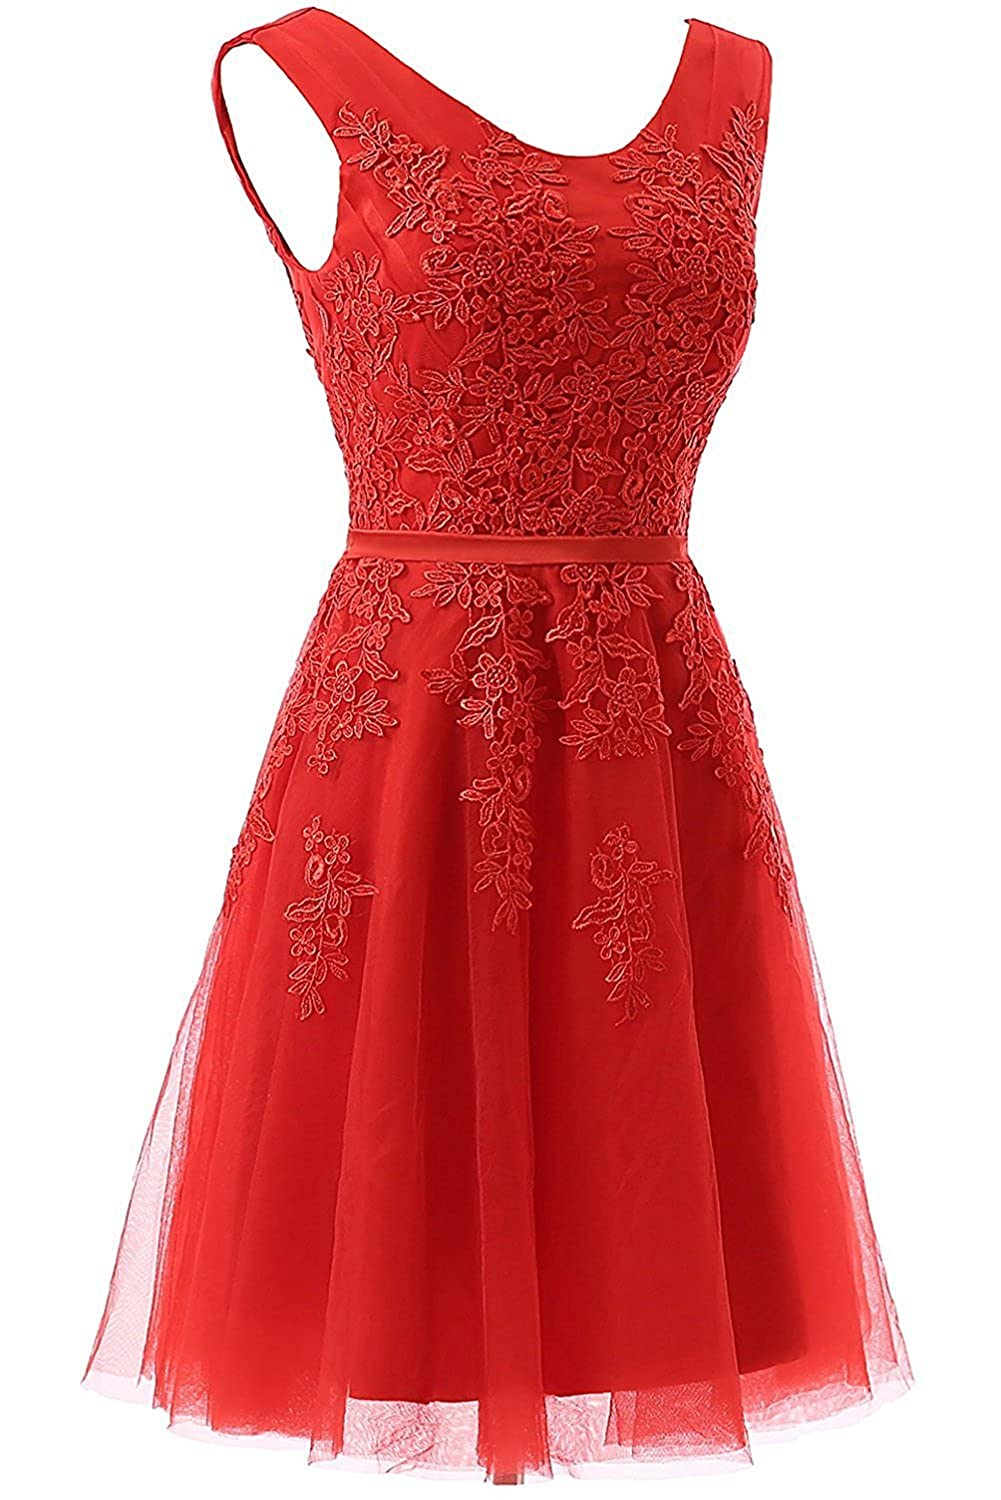 58a2d46ac34 DarlingU Women s Appliques Round Neck Homecoming Dress Lace Prom Party  GownHC231 at Amazon Women s Clothing store